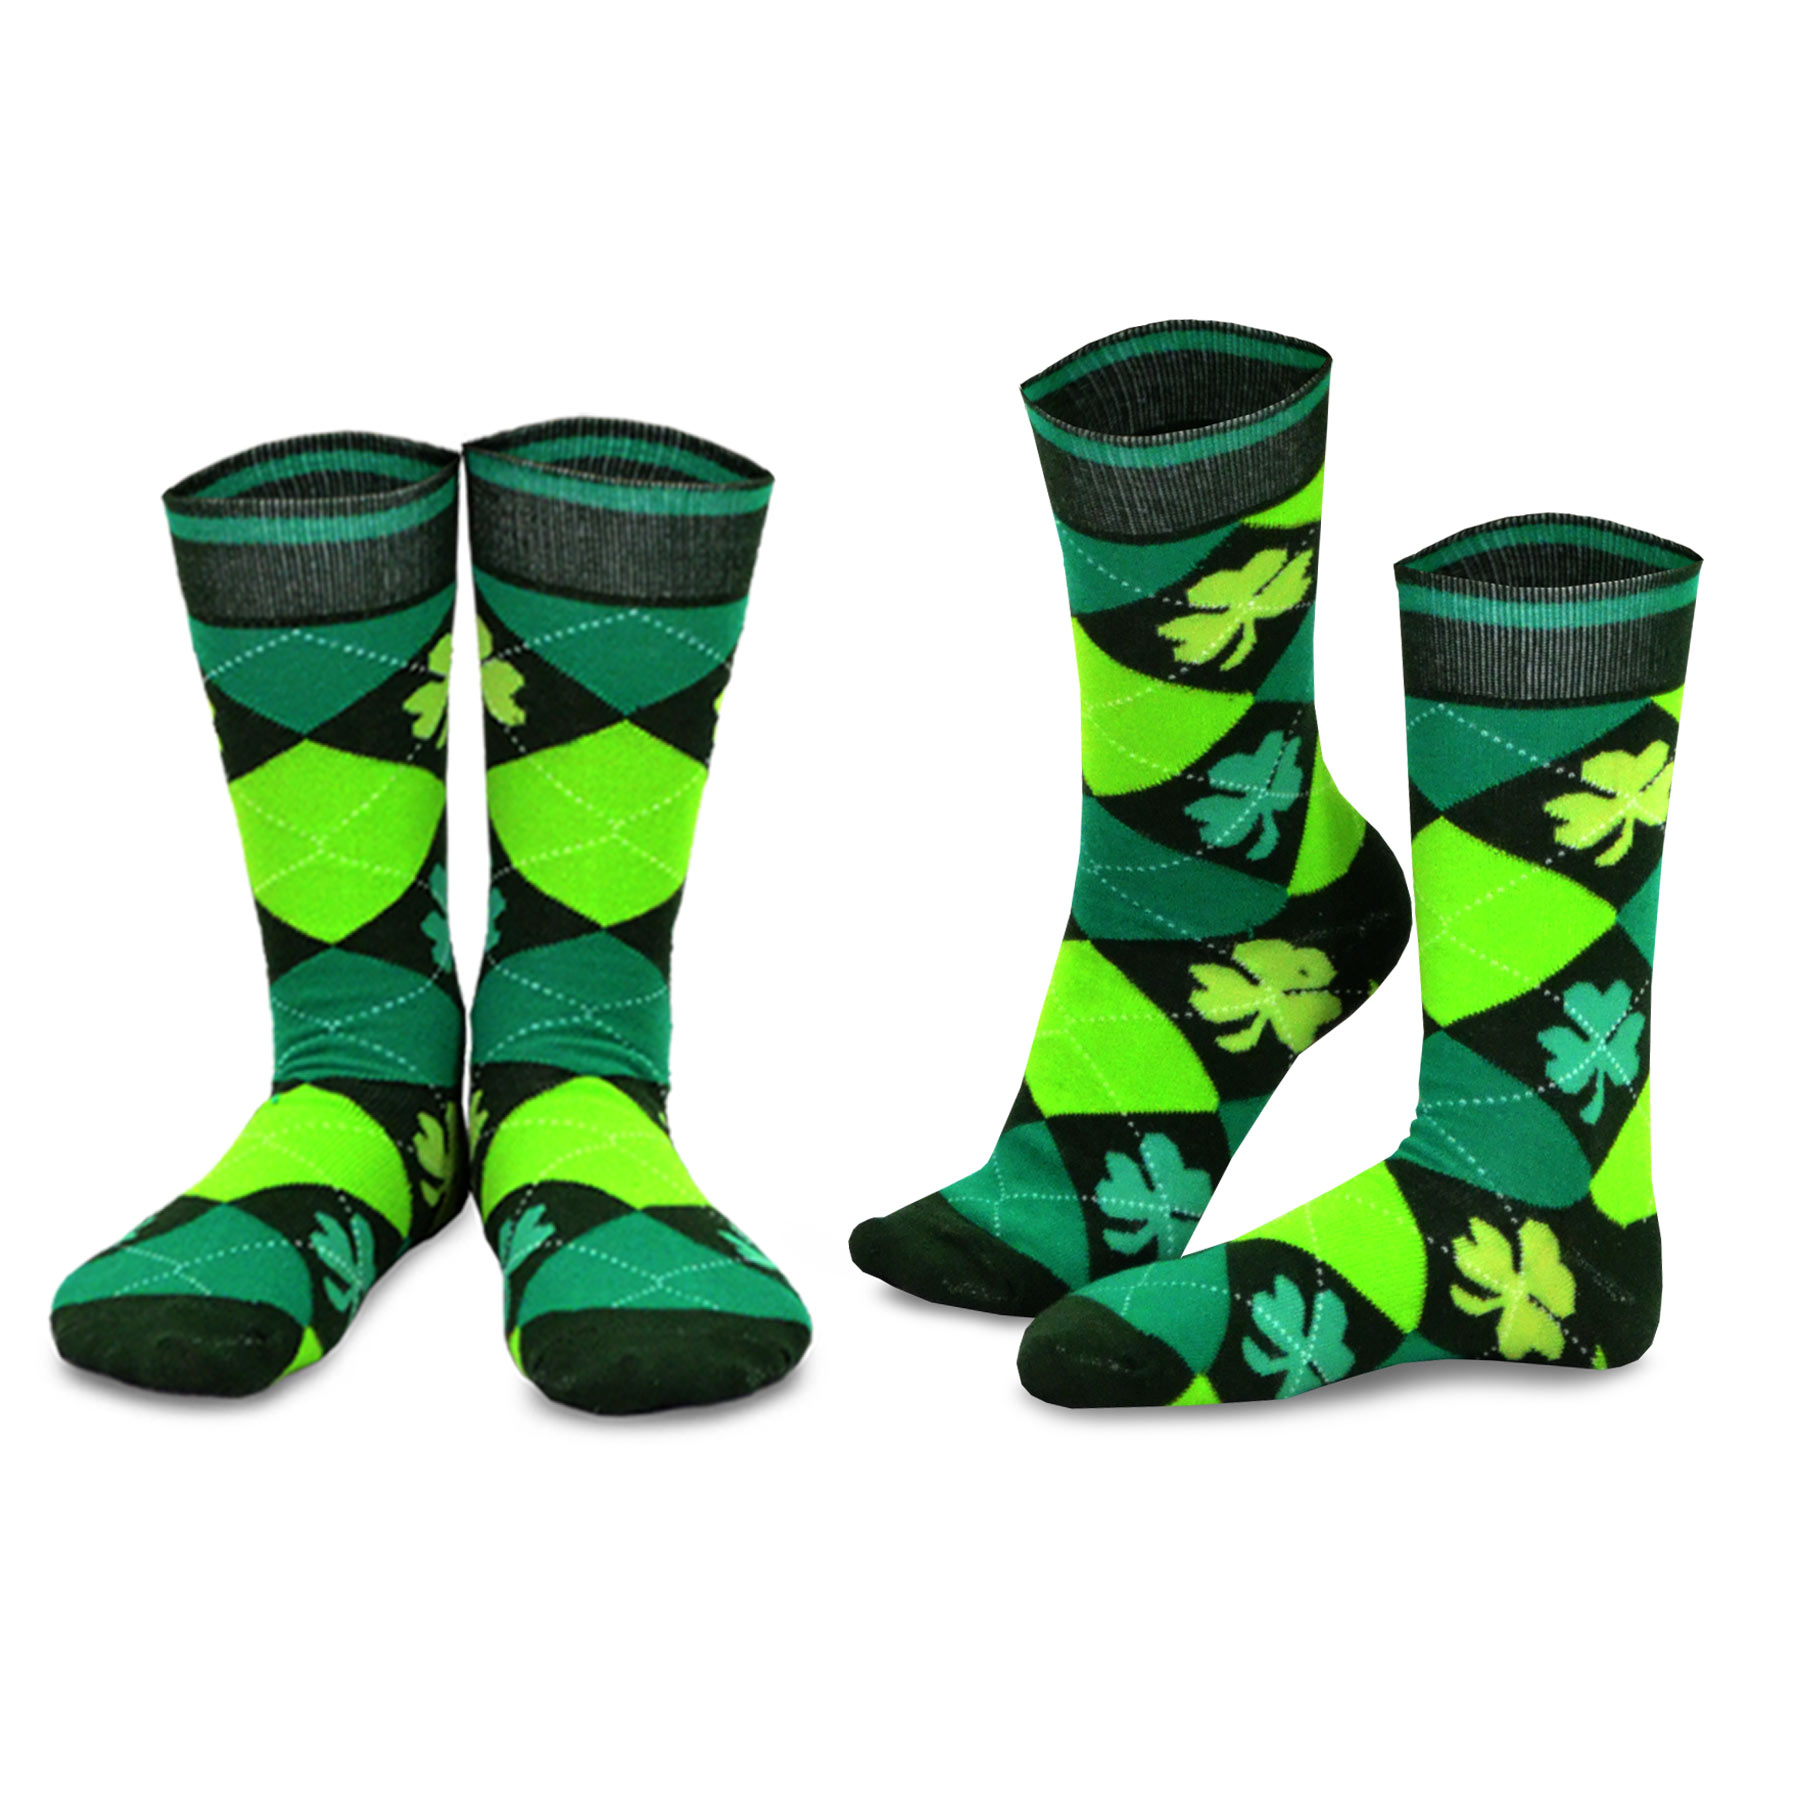 Patrick/'s Day Socks Ladies Crew Length Size 9-11 One Pair St